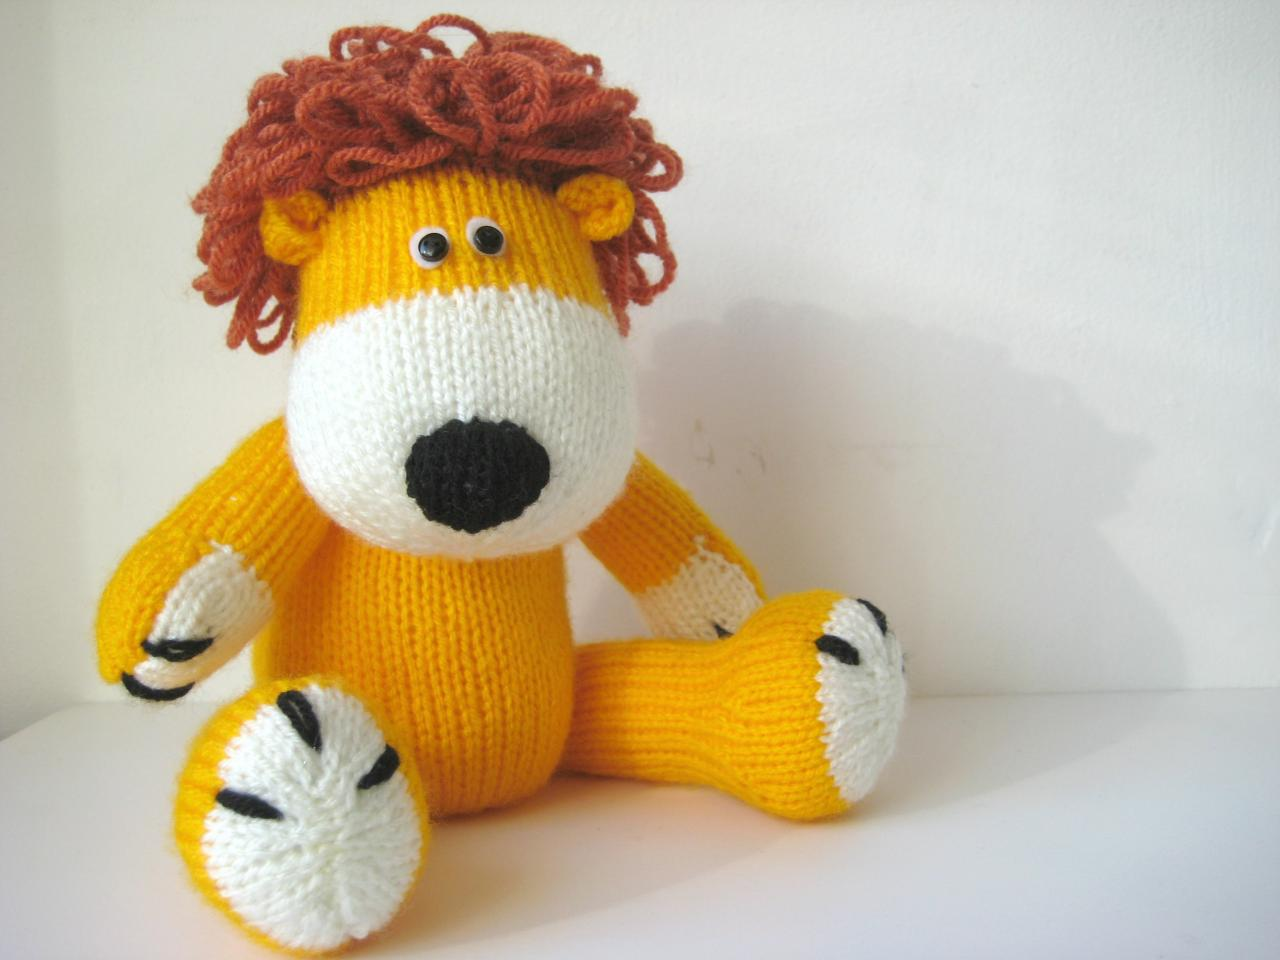 Knitting Pattern For A Toy Lion : Samson The Lion Toy Knitting Pattern on Luulla